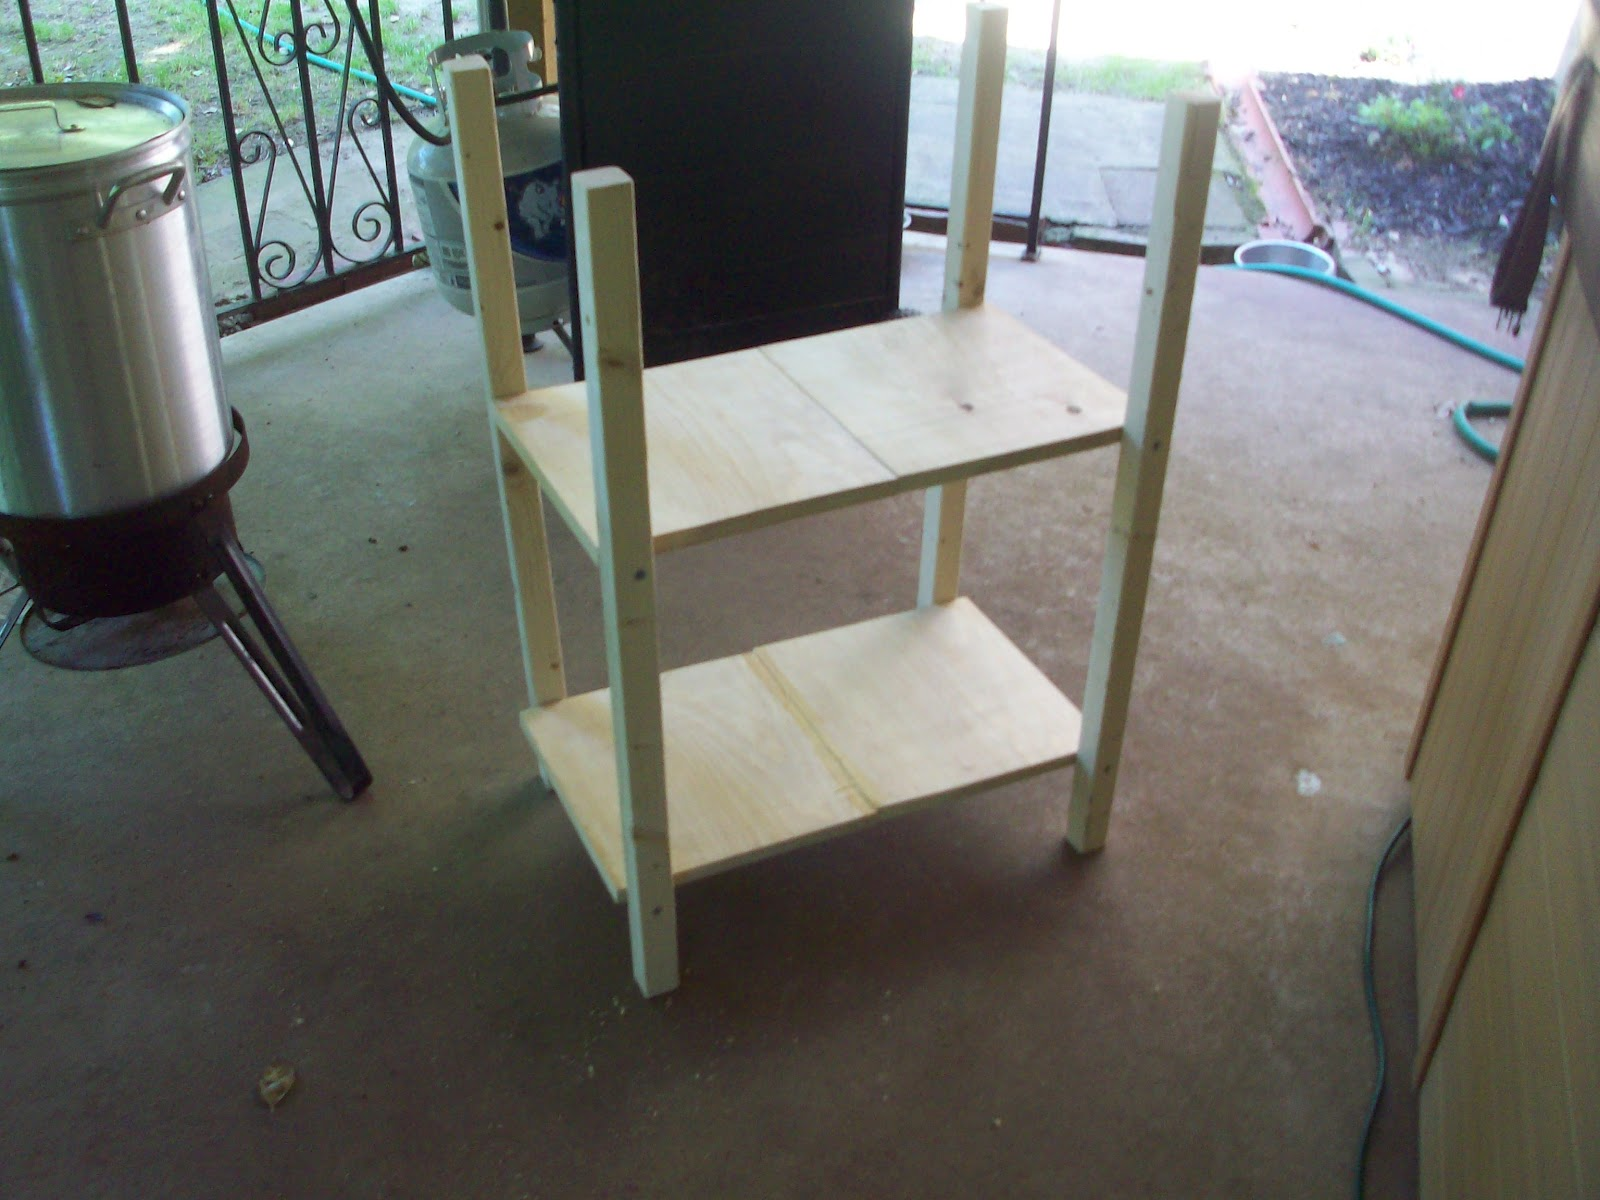 Diary of the Unexpected Housewife: Building a Desk for Under $50